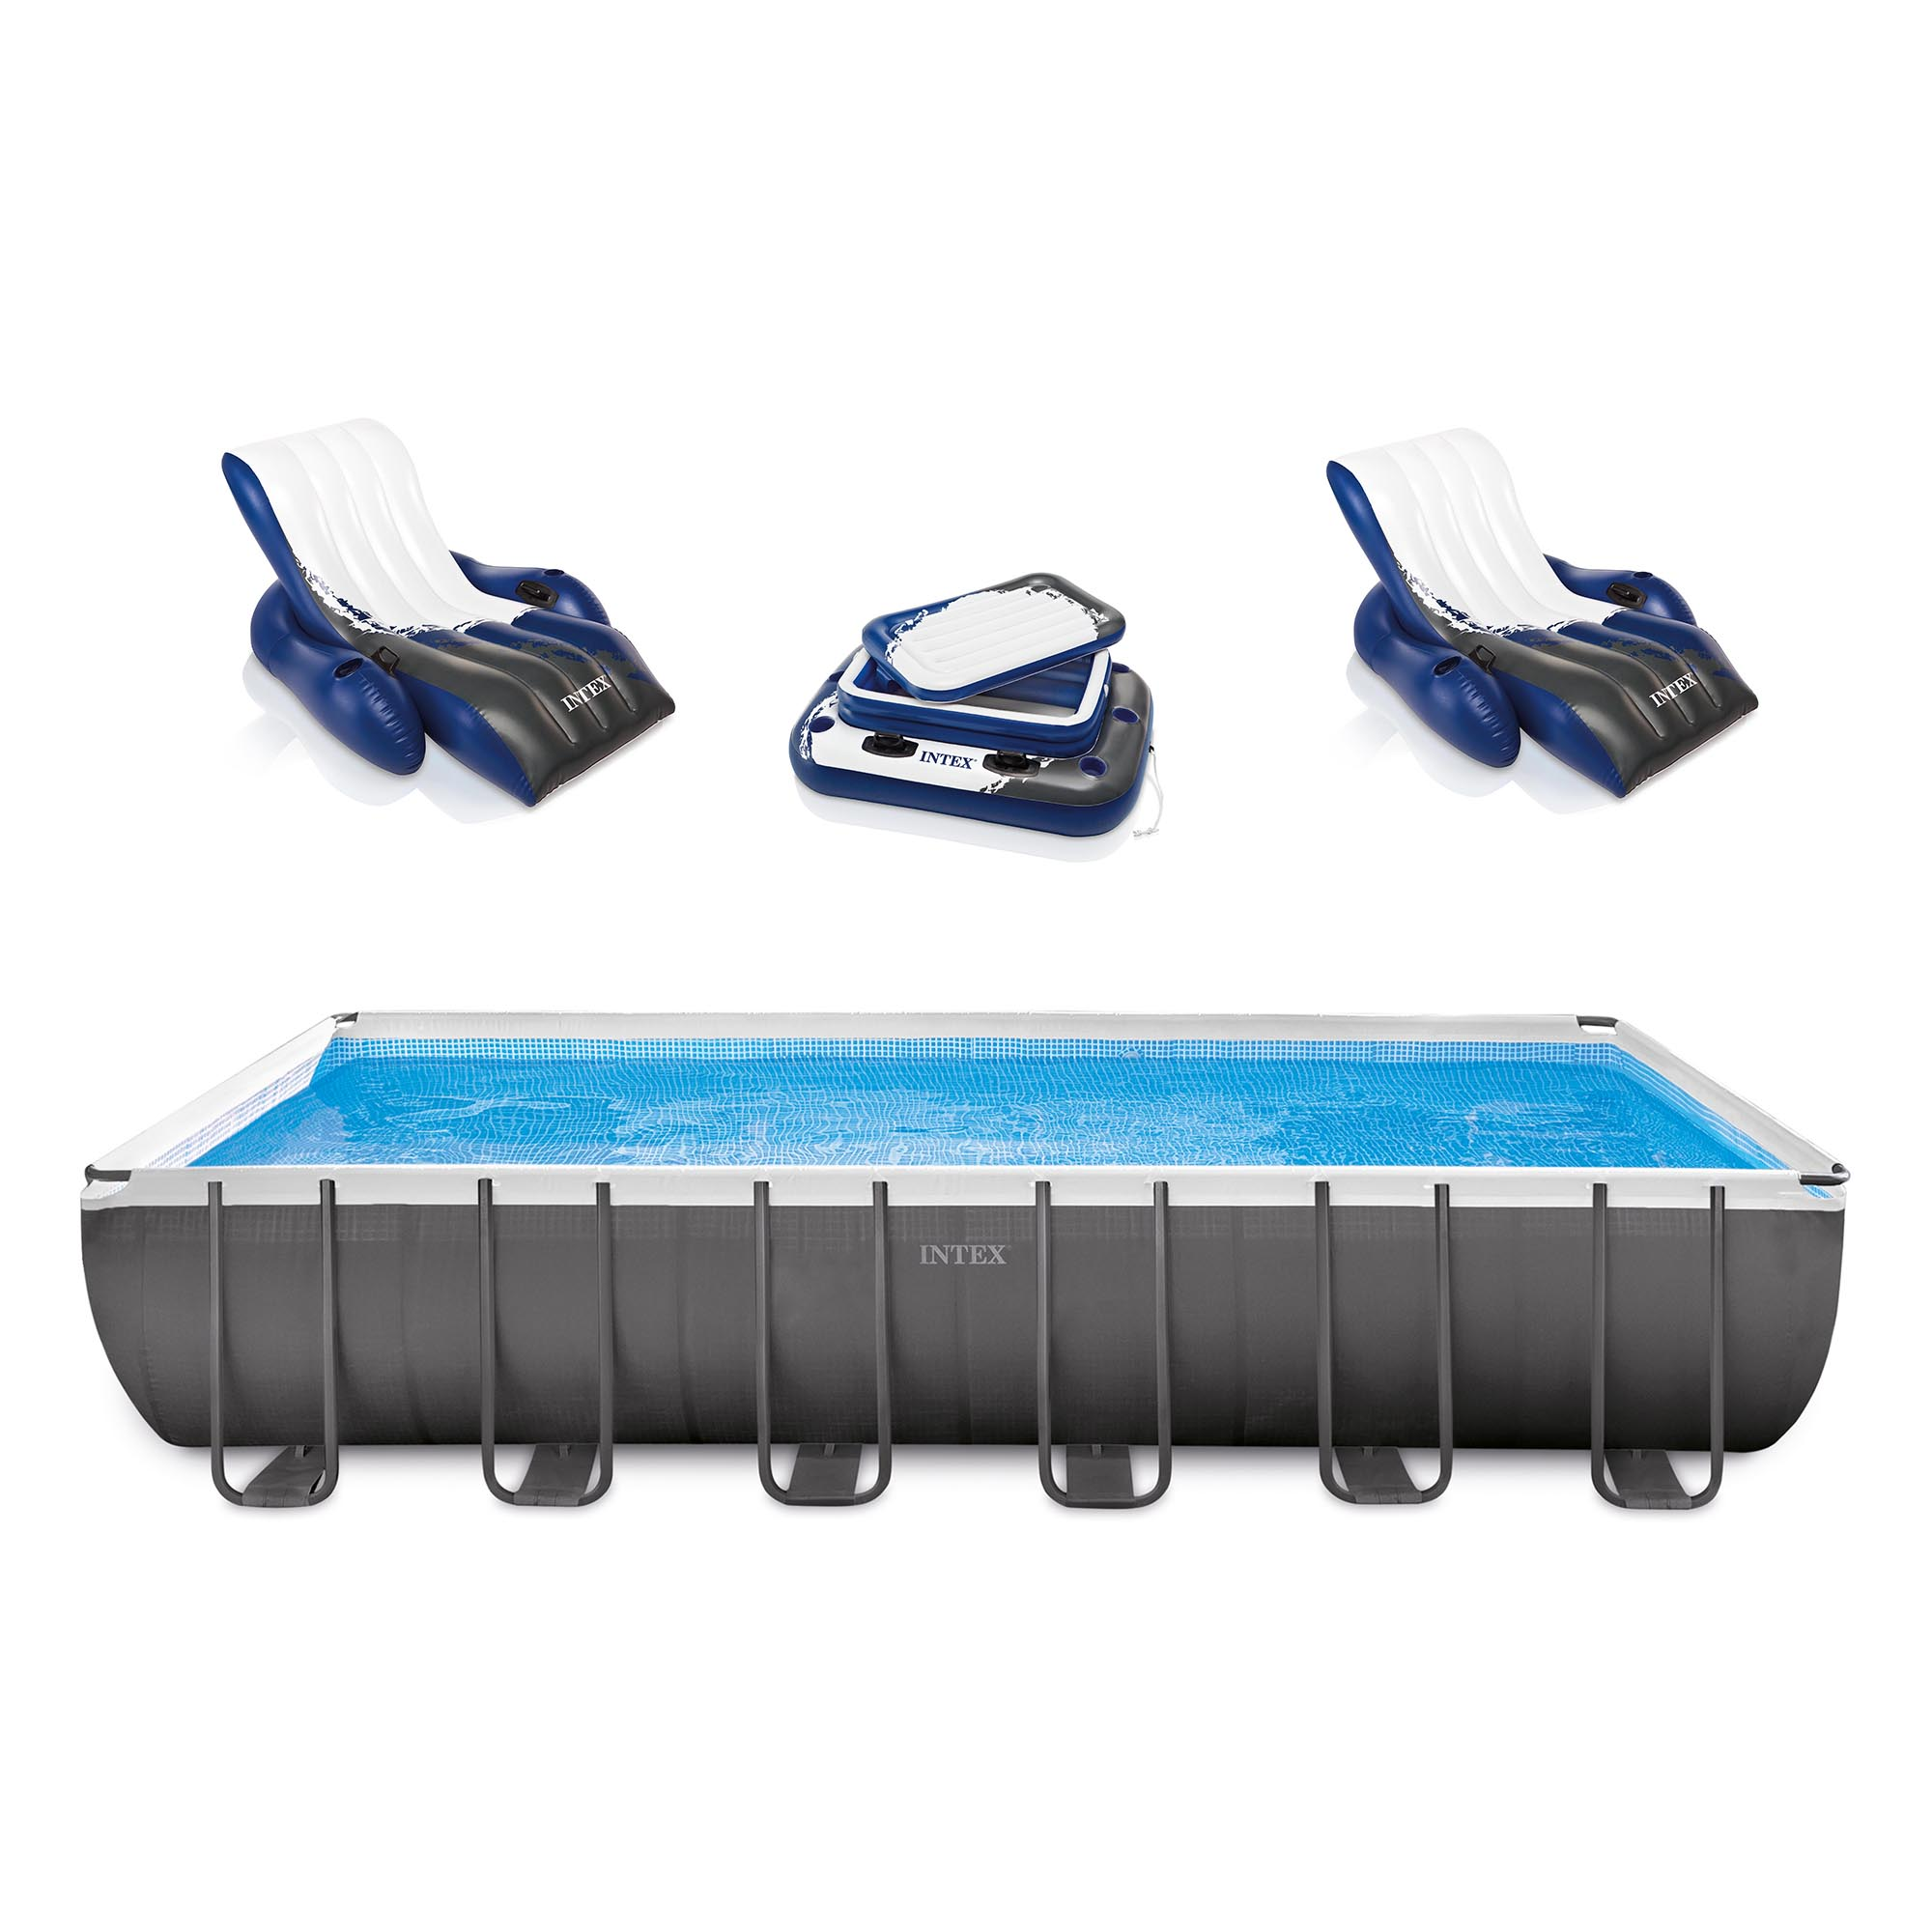 "Intex 24' x 12' x 52"" Ultra Frame Rectangular Swimming Pool Set 